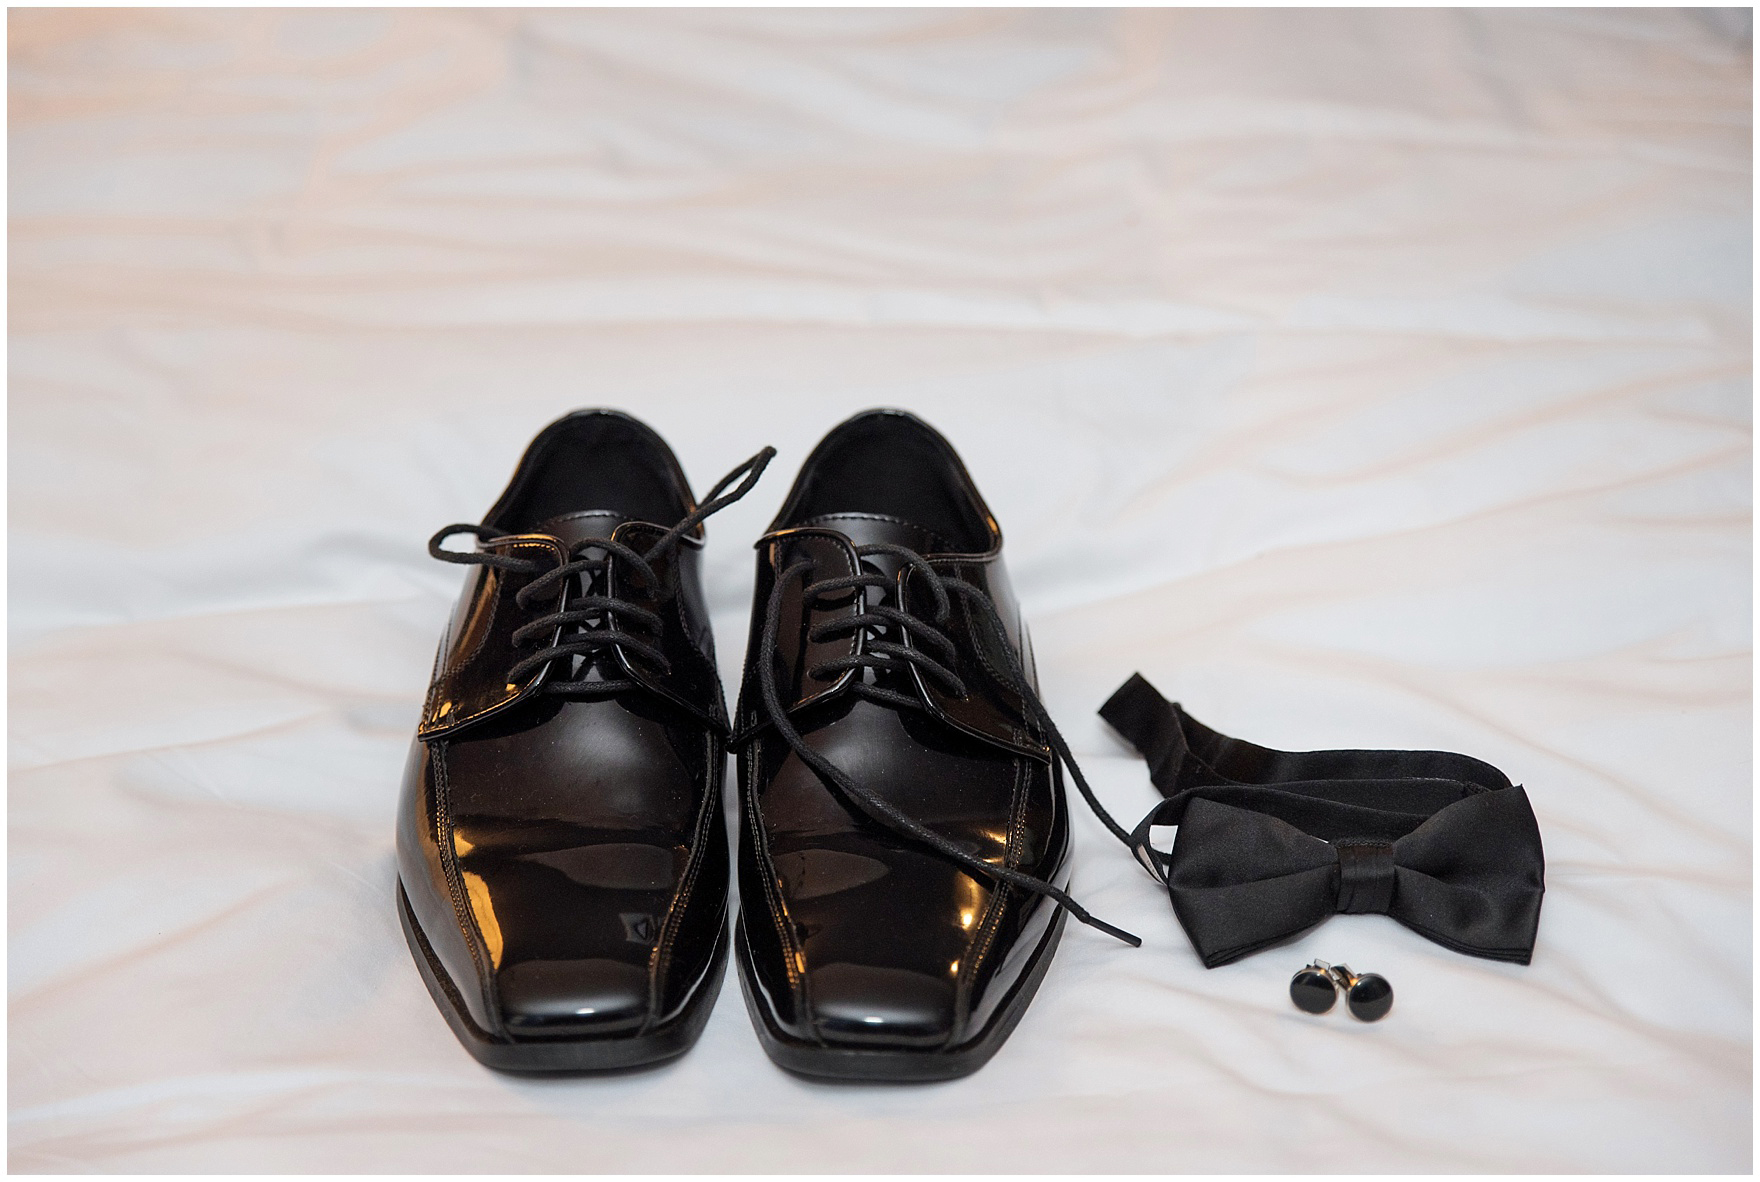 Detail of the groom's shoes and tie for a Newberry Library Chicago wedding.